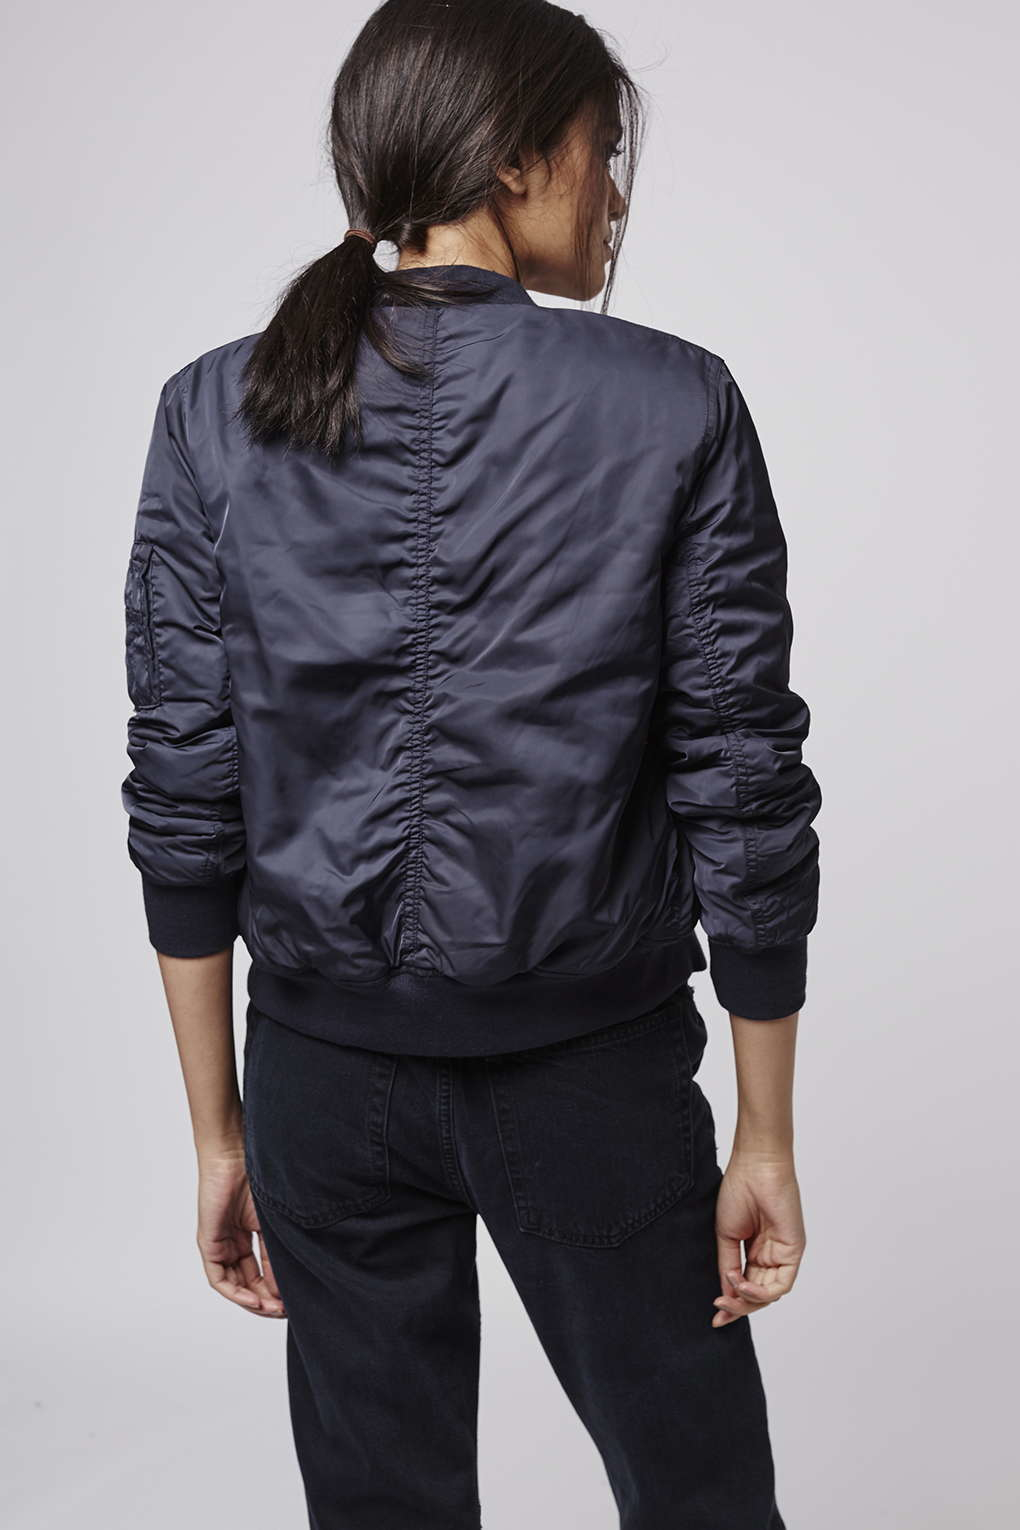 Topshop Petite Faux Fur Lined Bomber Jacket in Blue | Lyst